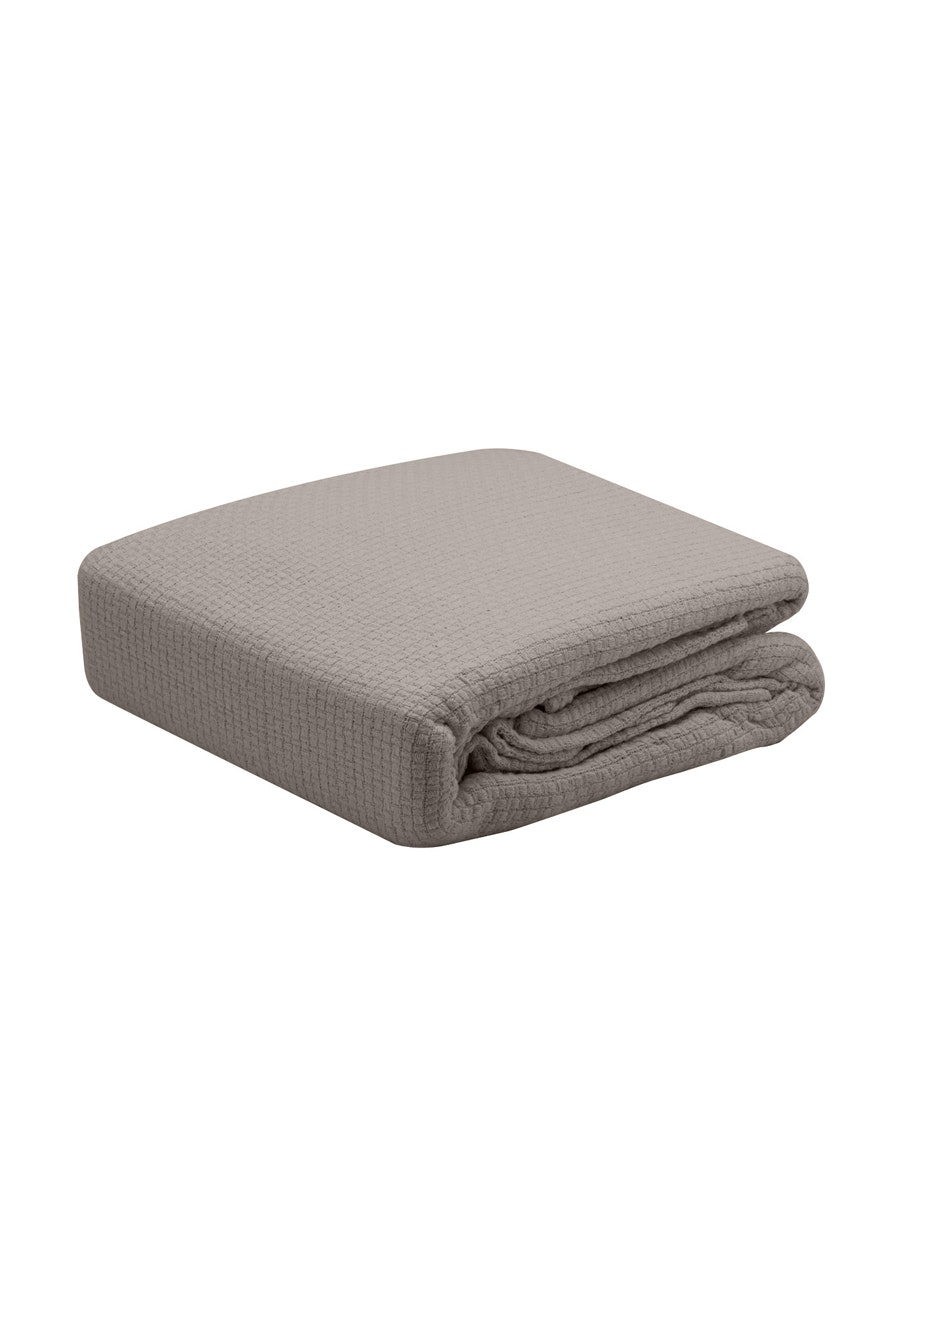 Pebble Weave Cotton Blanket - Stone Double Bed